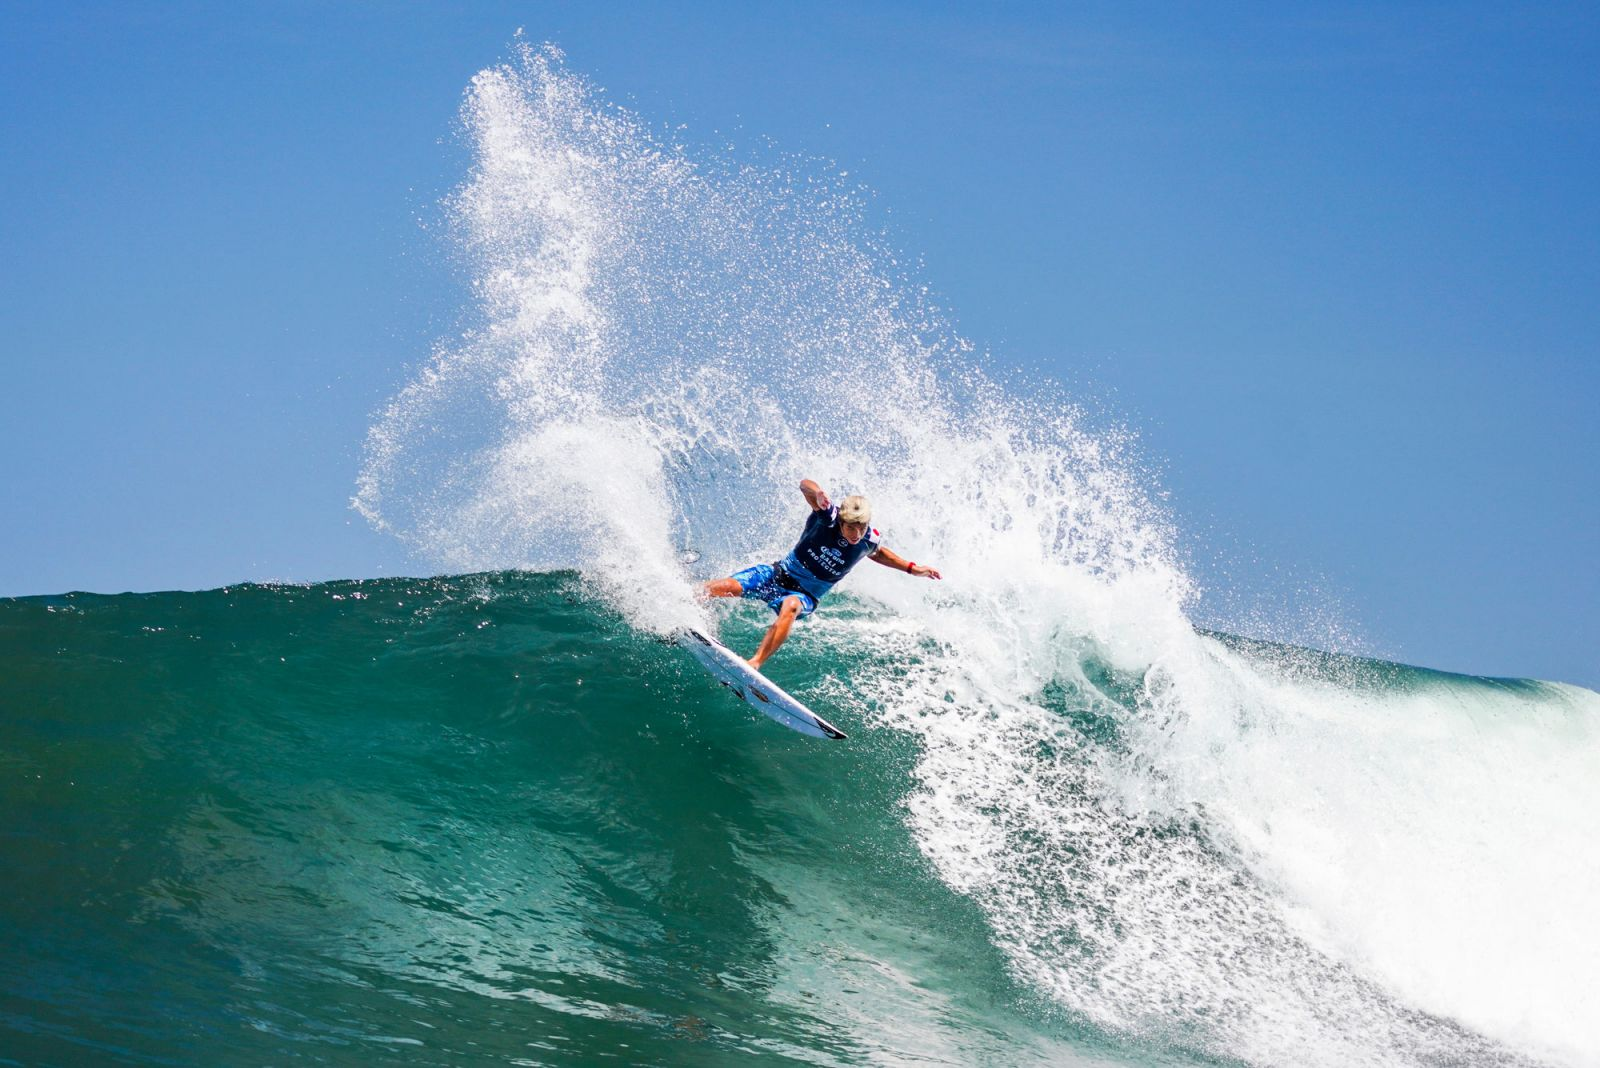 Kanoa Igarashi in action at the Corona Bali Protected CT